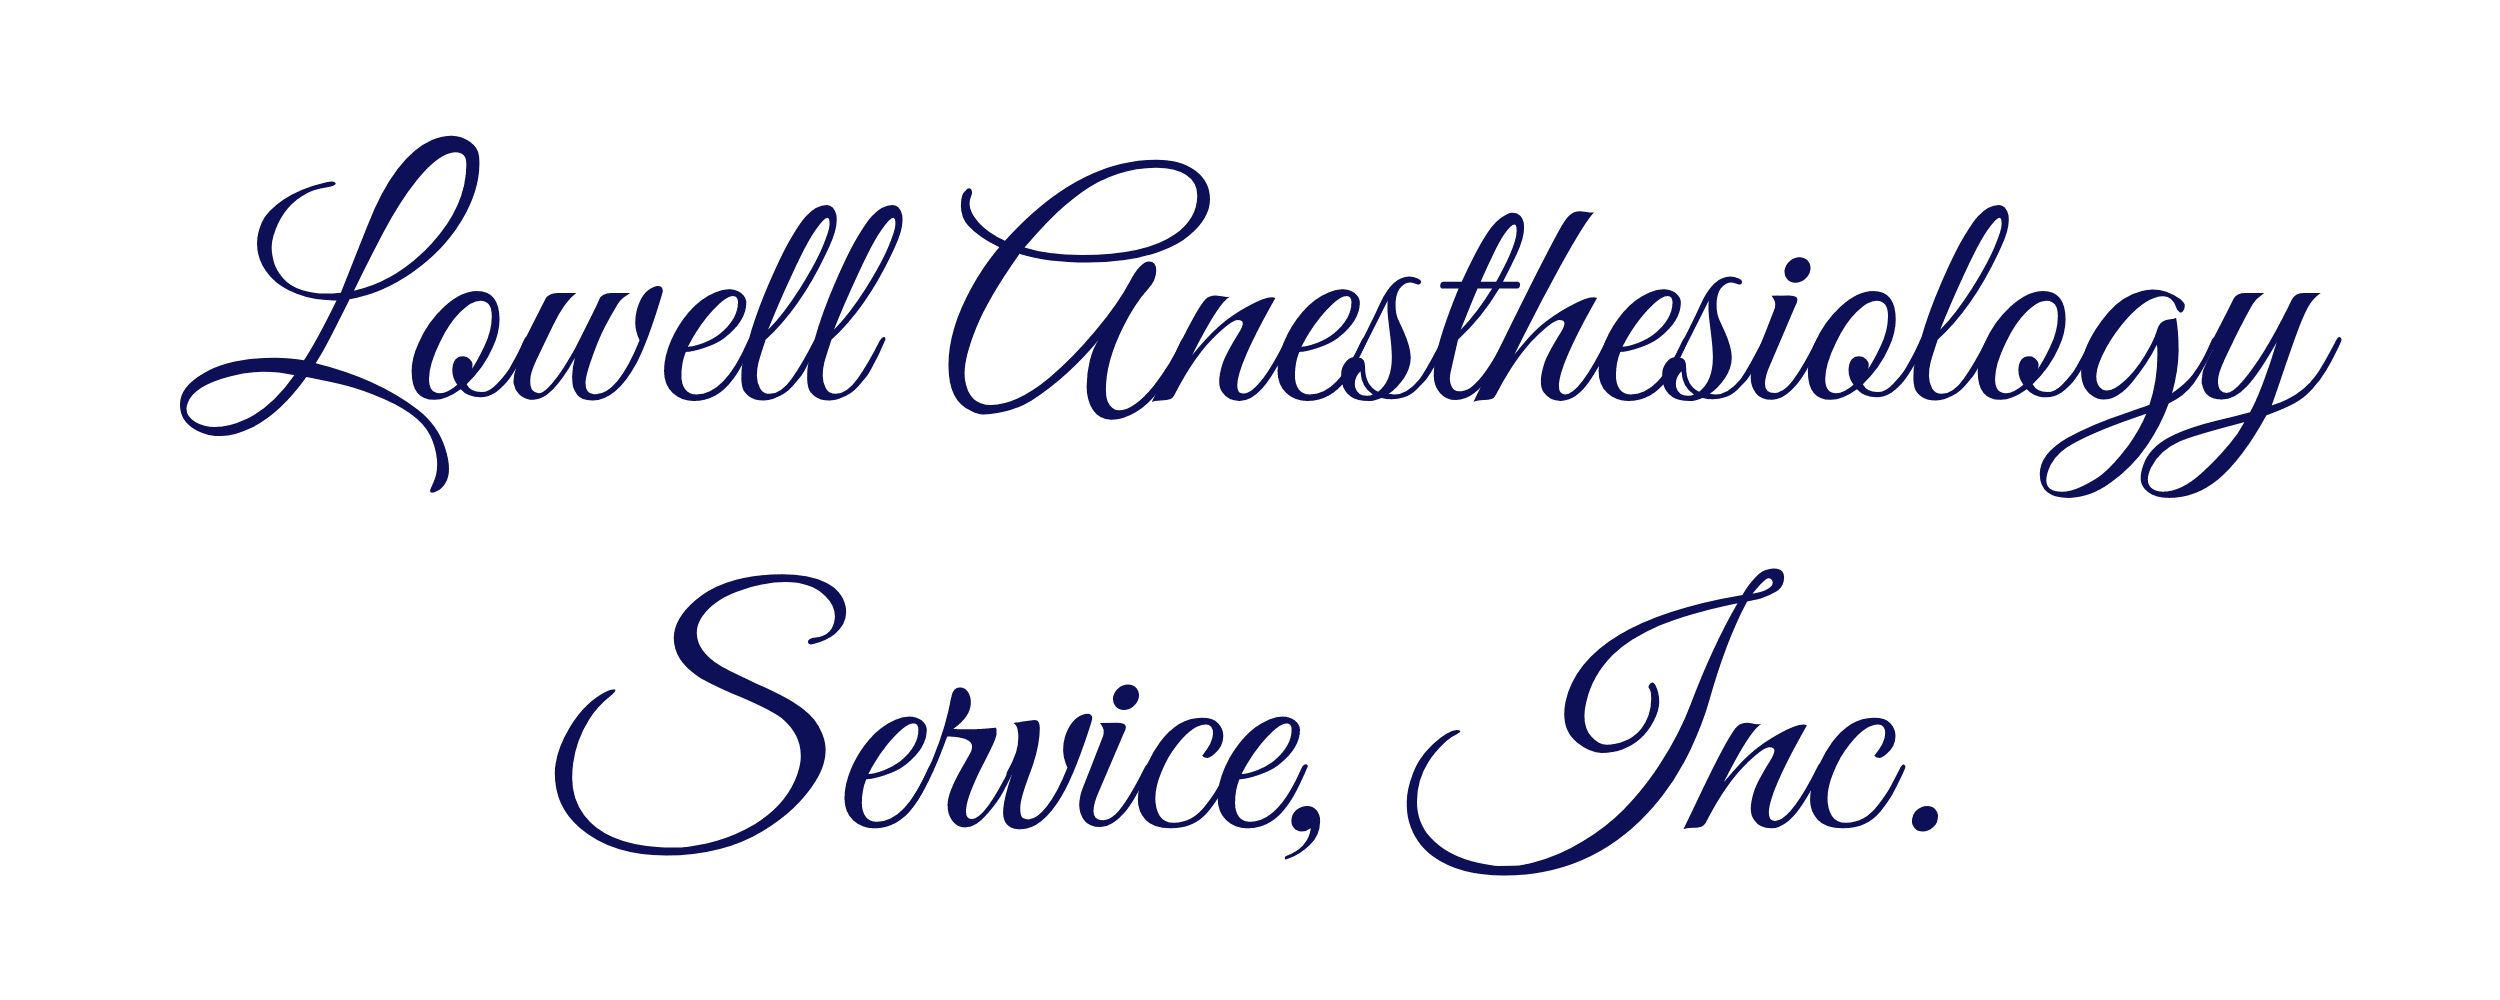 Lowell Anesthesiology Service, Inc.